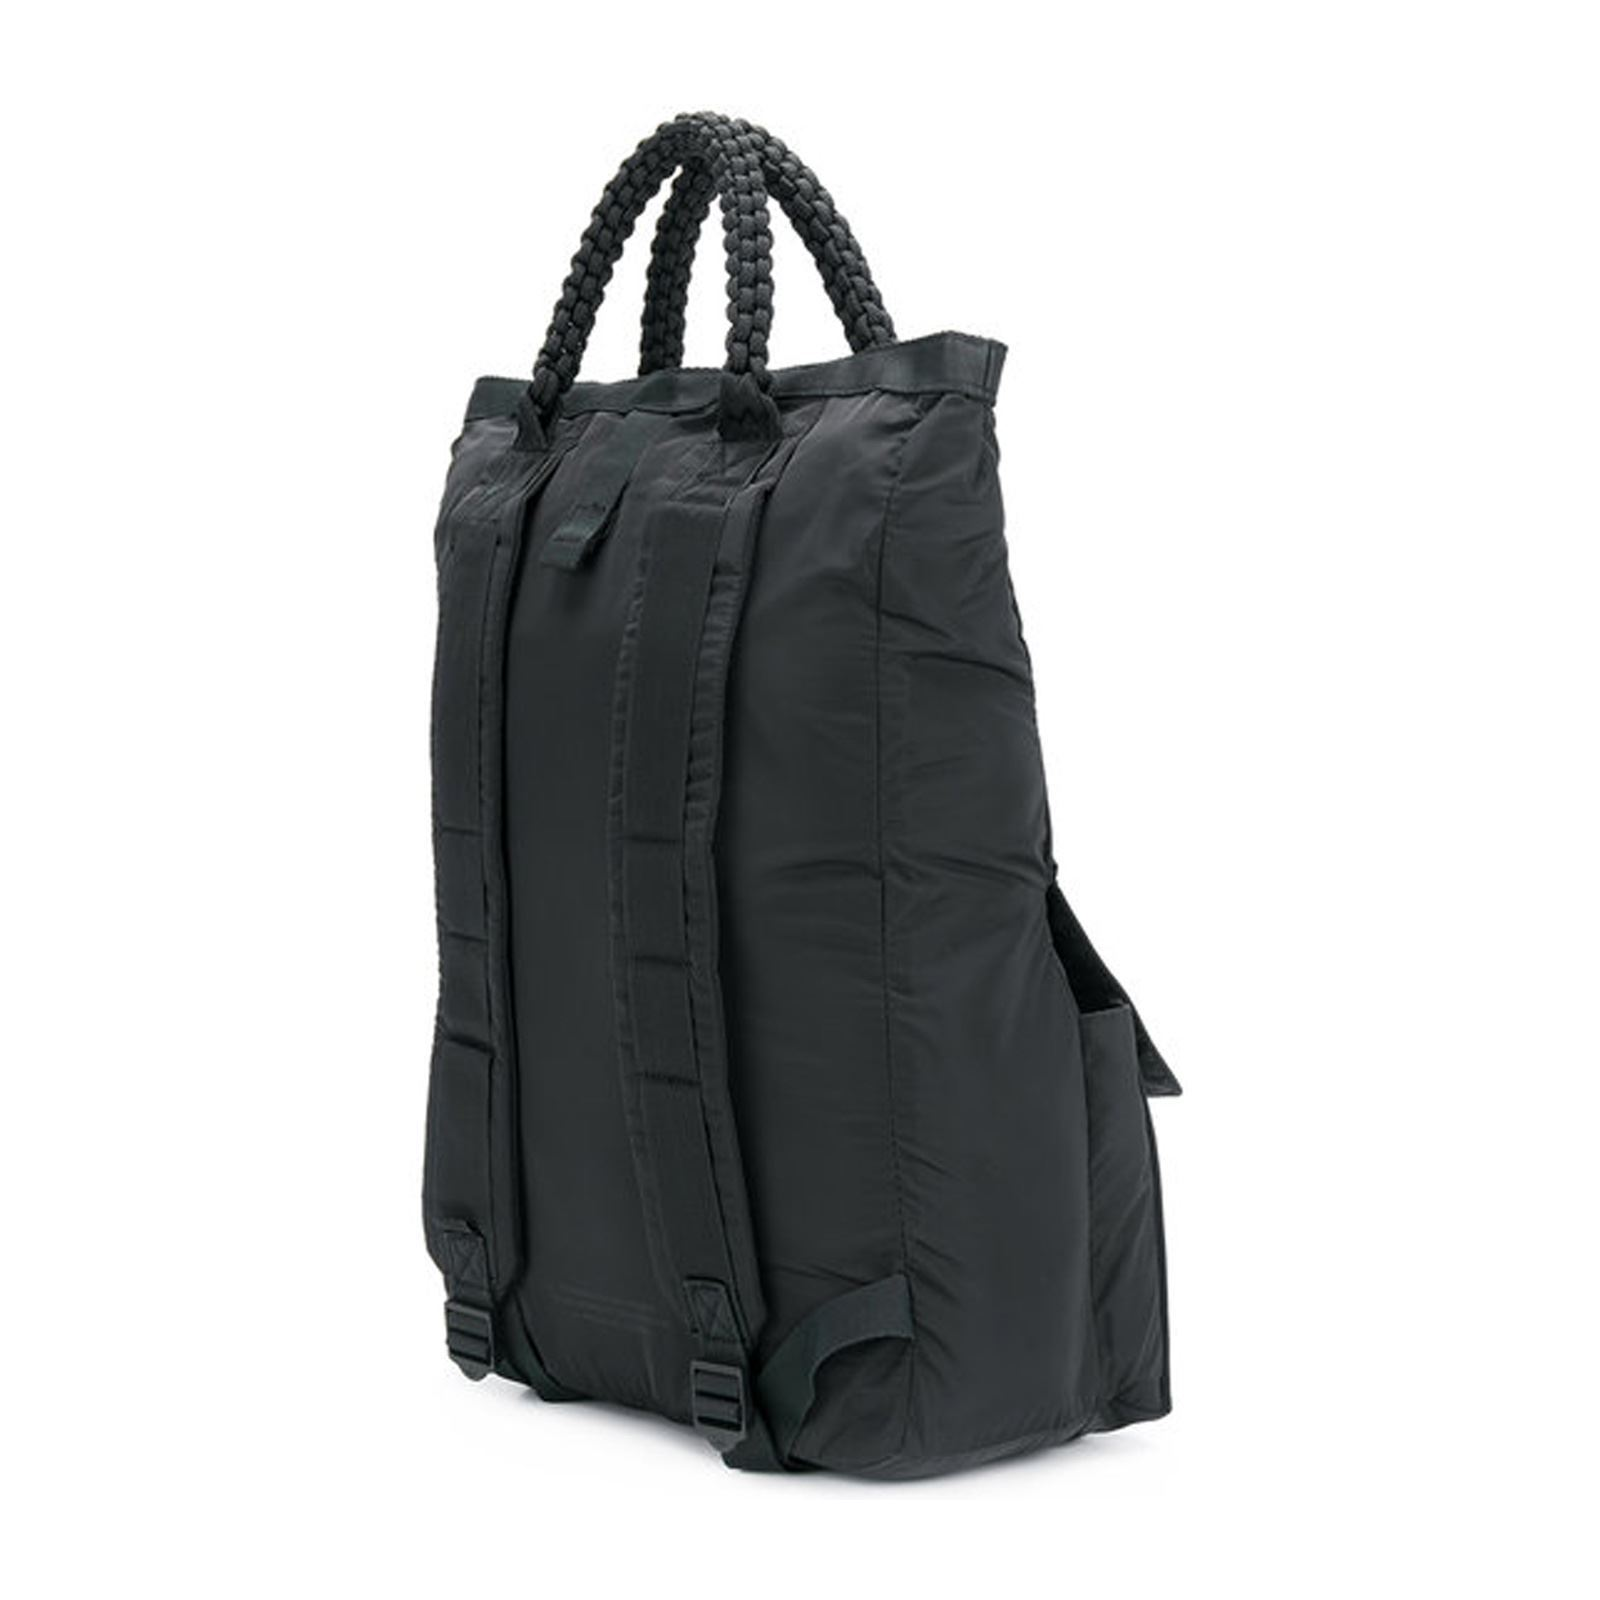 Noir Top Dos Originals Brandalley Bp Roll Adidas Sac À xH0nxw